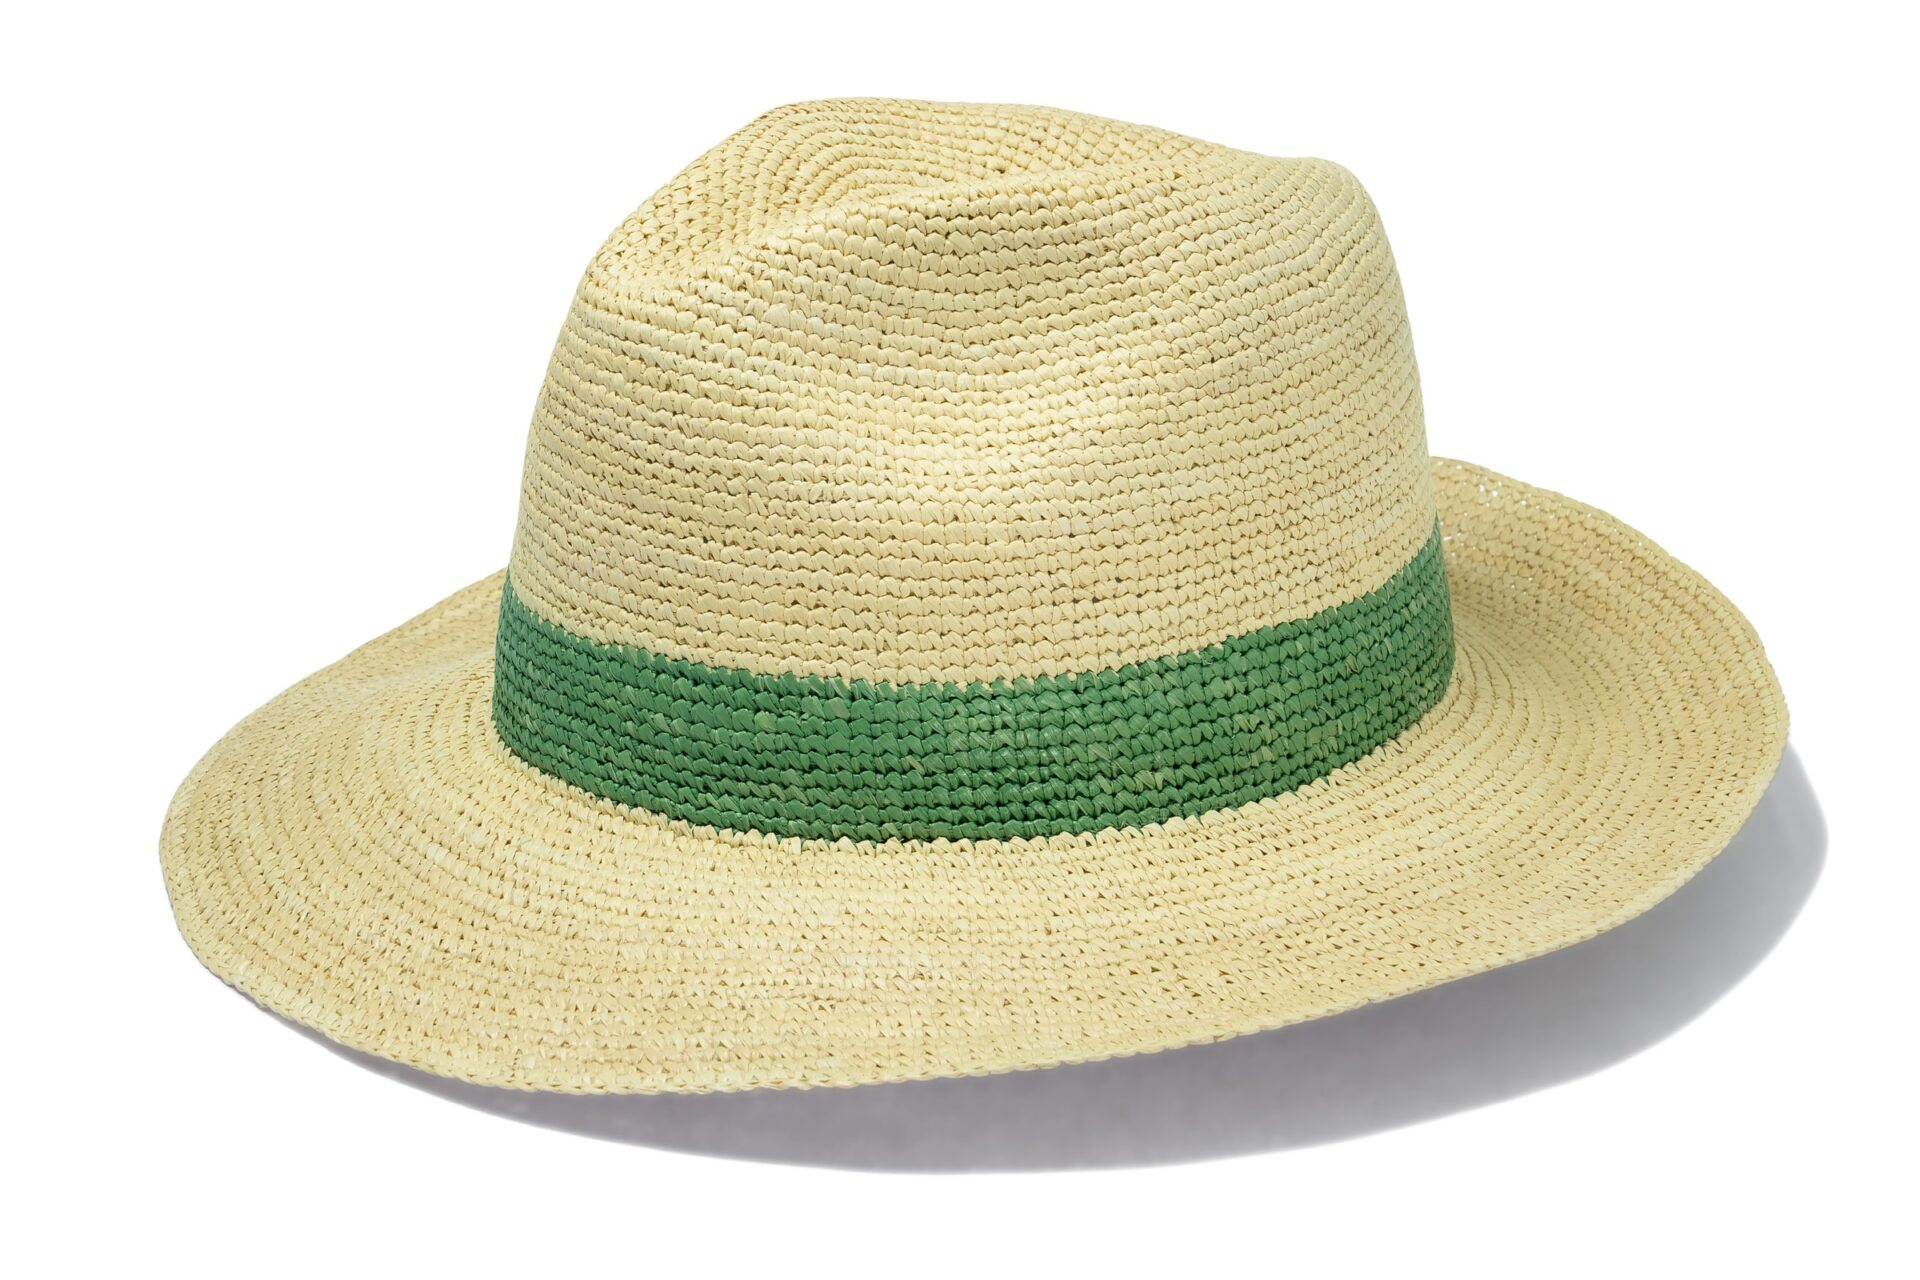 Men's_rollable_Panama_sun_hat